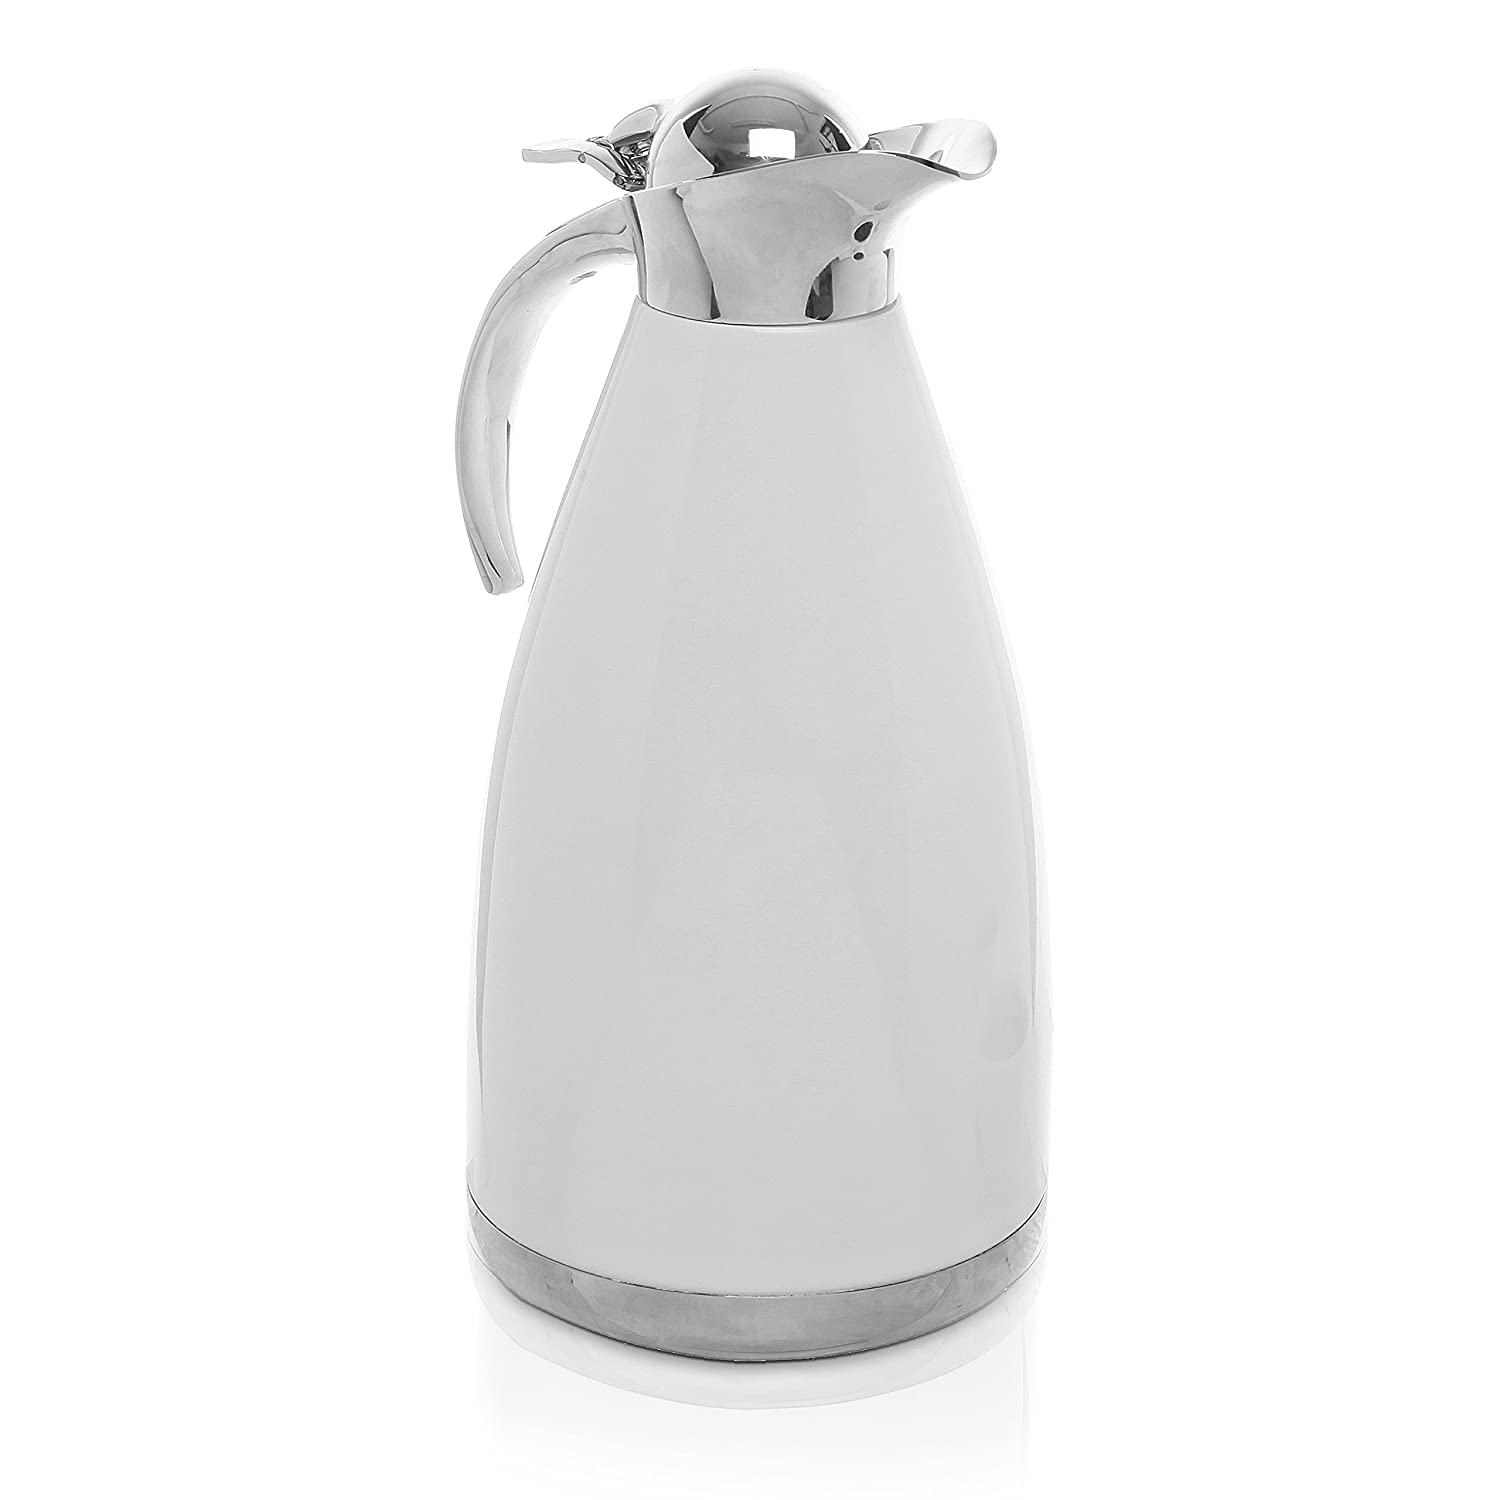 2.0L White Stainless Steel Double Wall Vacuum Insulated Thermal Carafe / Hot Coffee & Tea Serving Pitcher MyGift CECOMINOD081827